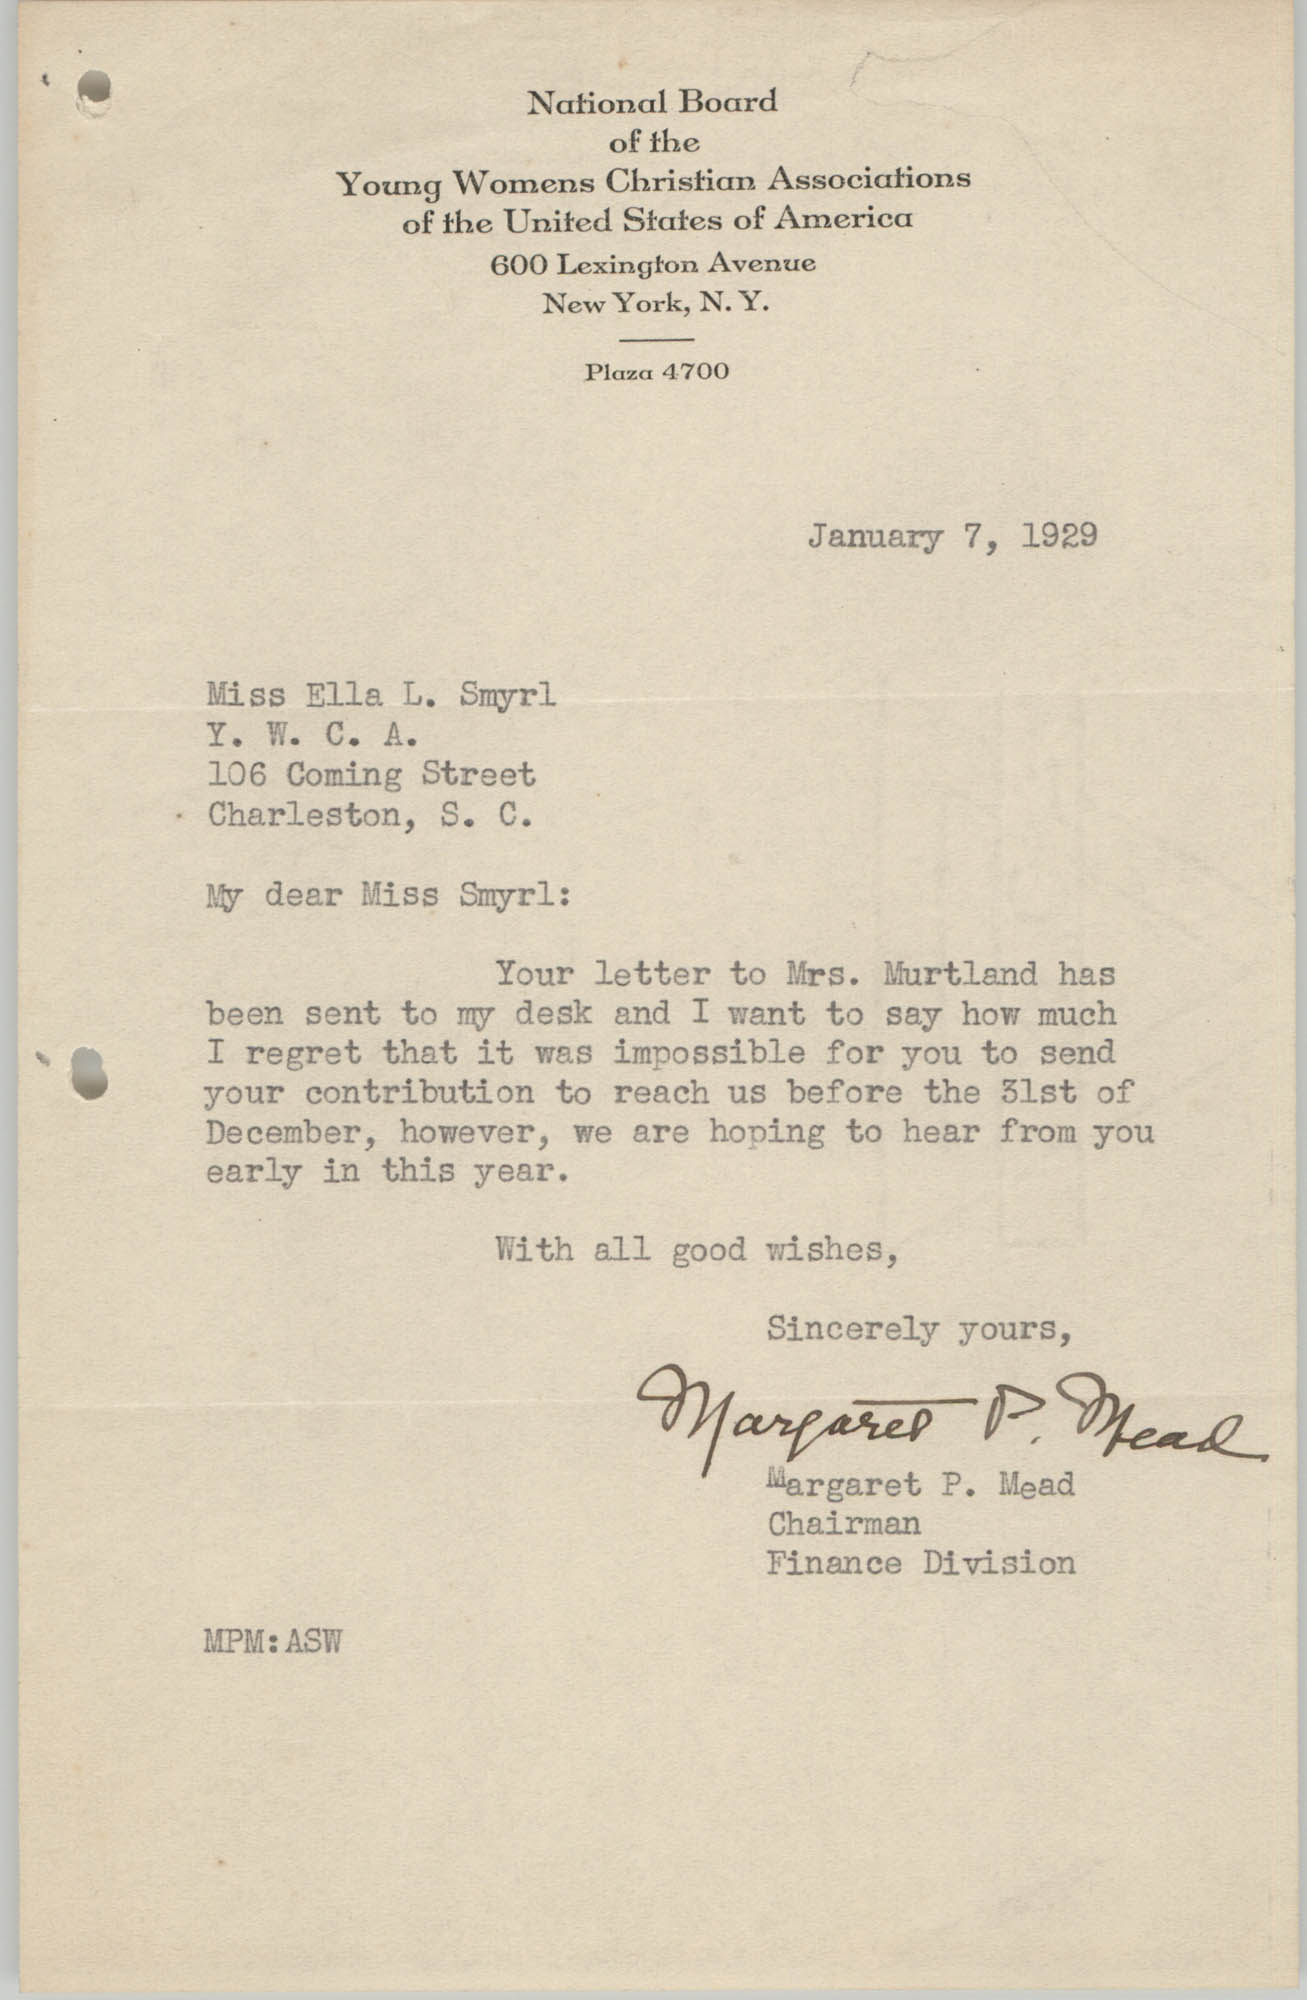 Letter from Margaret P. Mead to Ella L. Smyrl, January 7, 1929